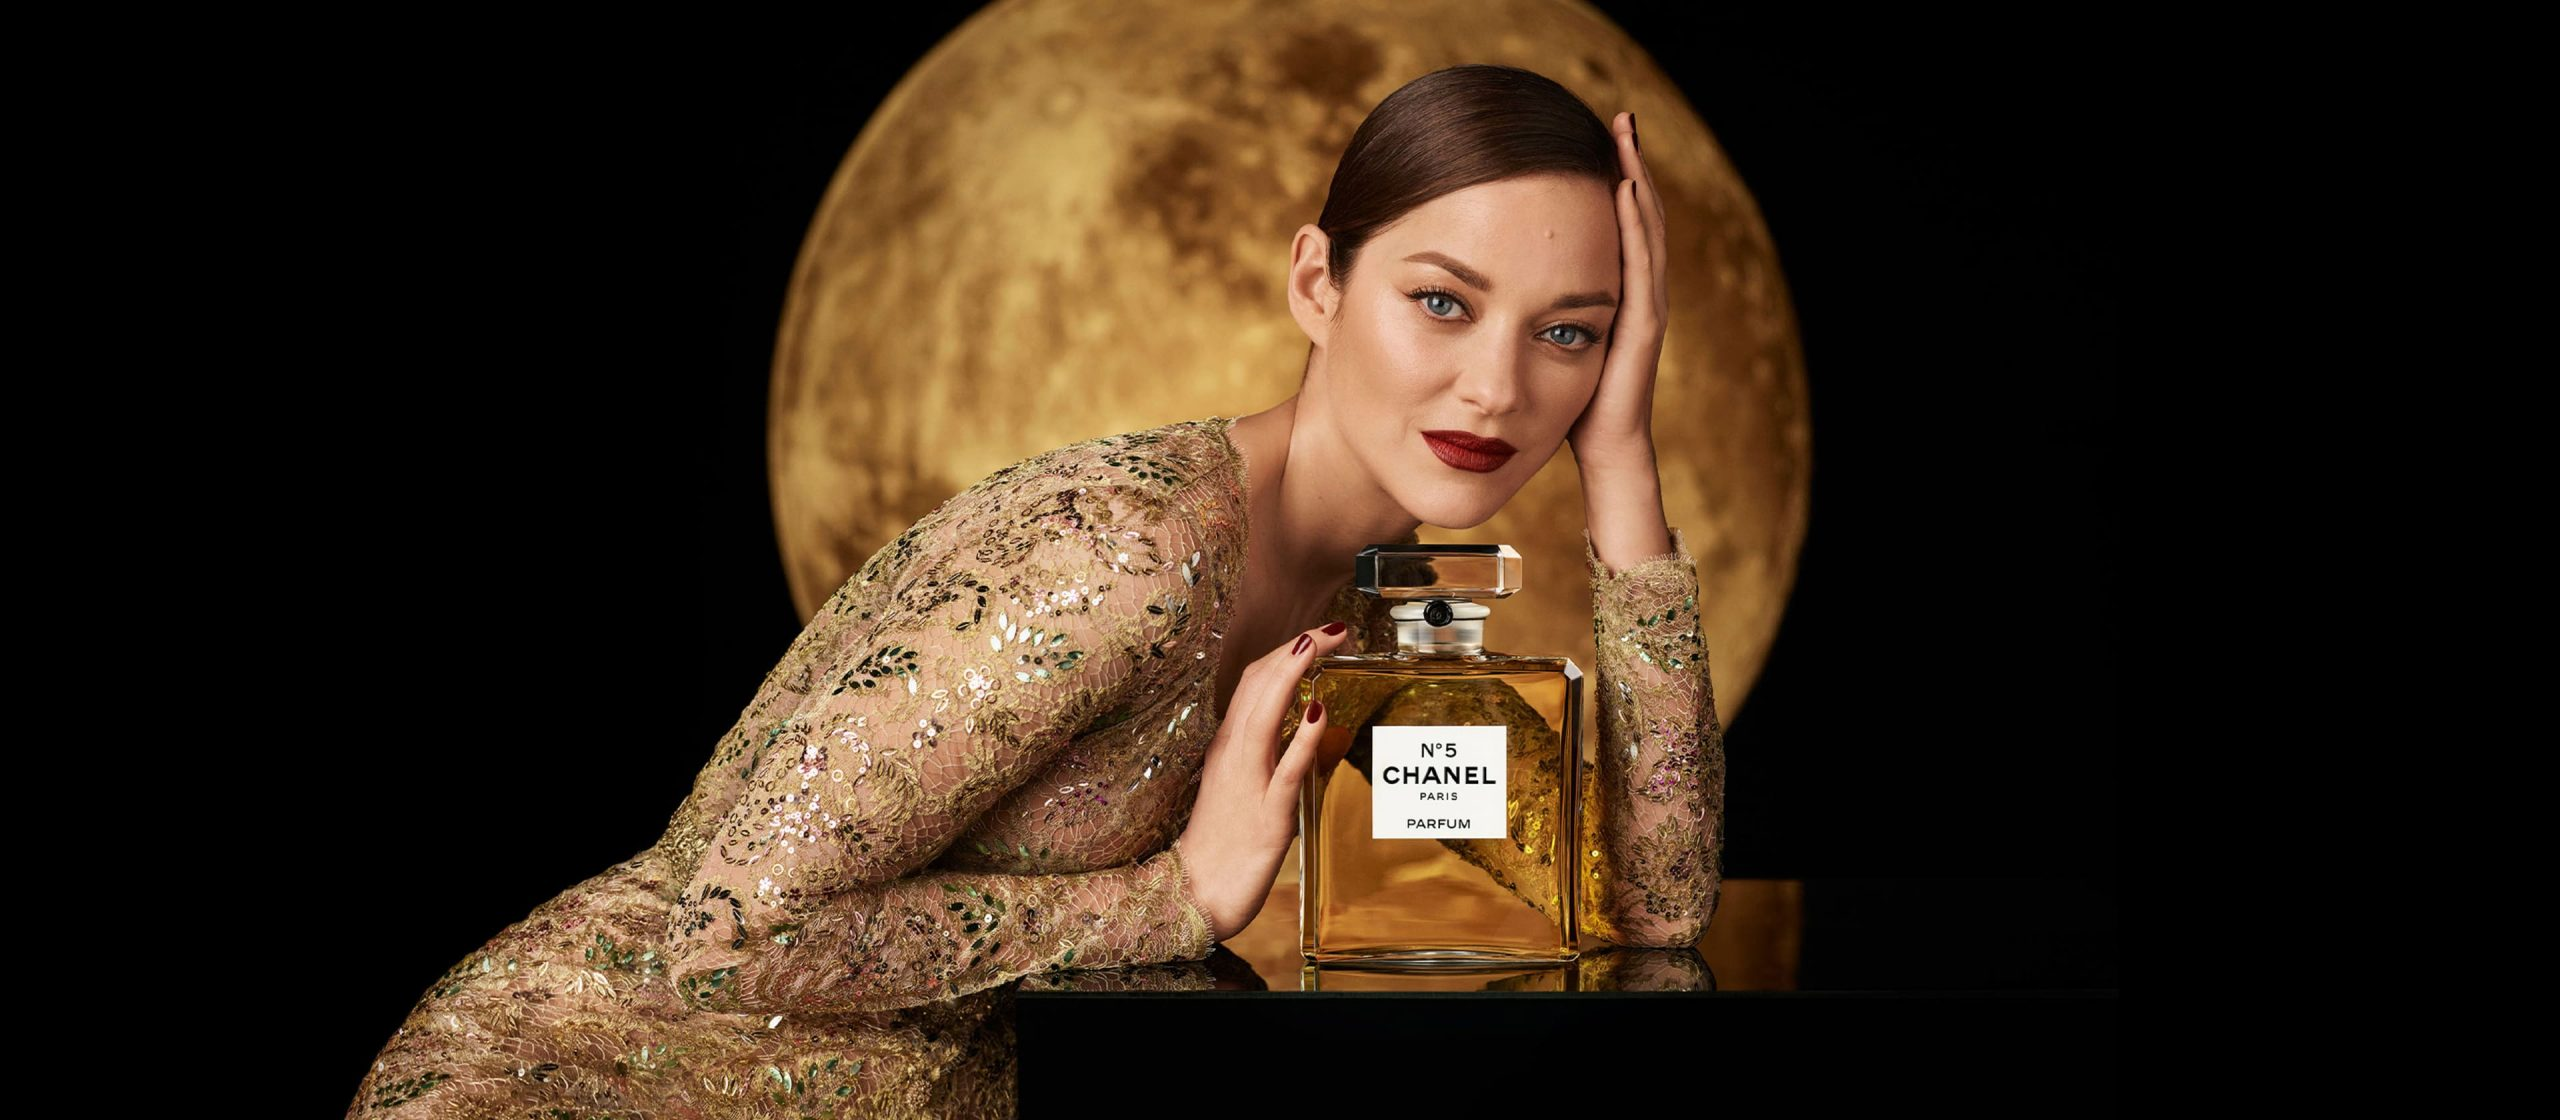 Chanel N°5 Holiday 2020 Ad Campaign with Marion Cotillard Film & Photos